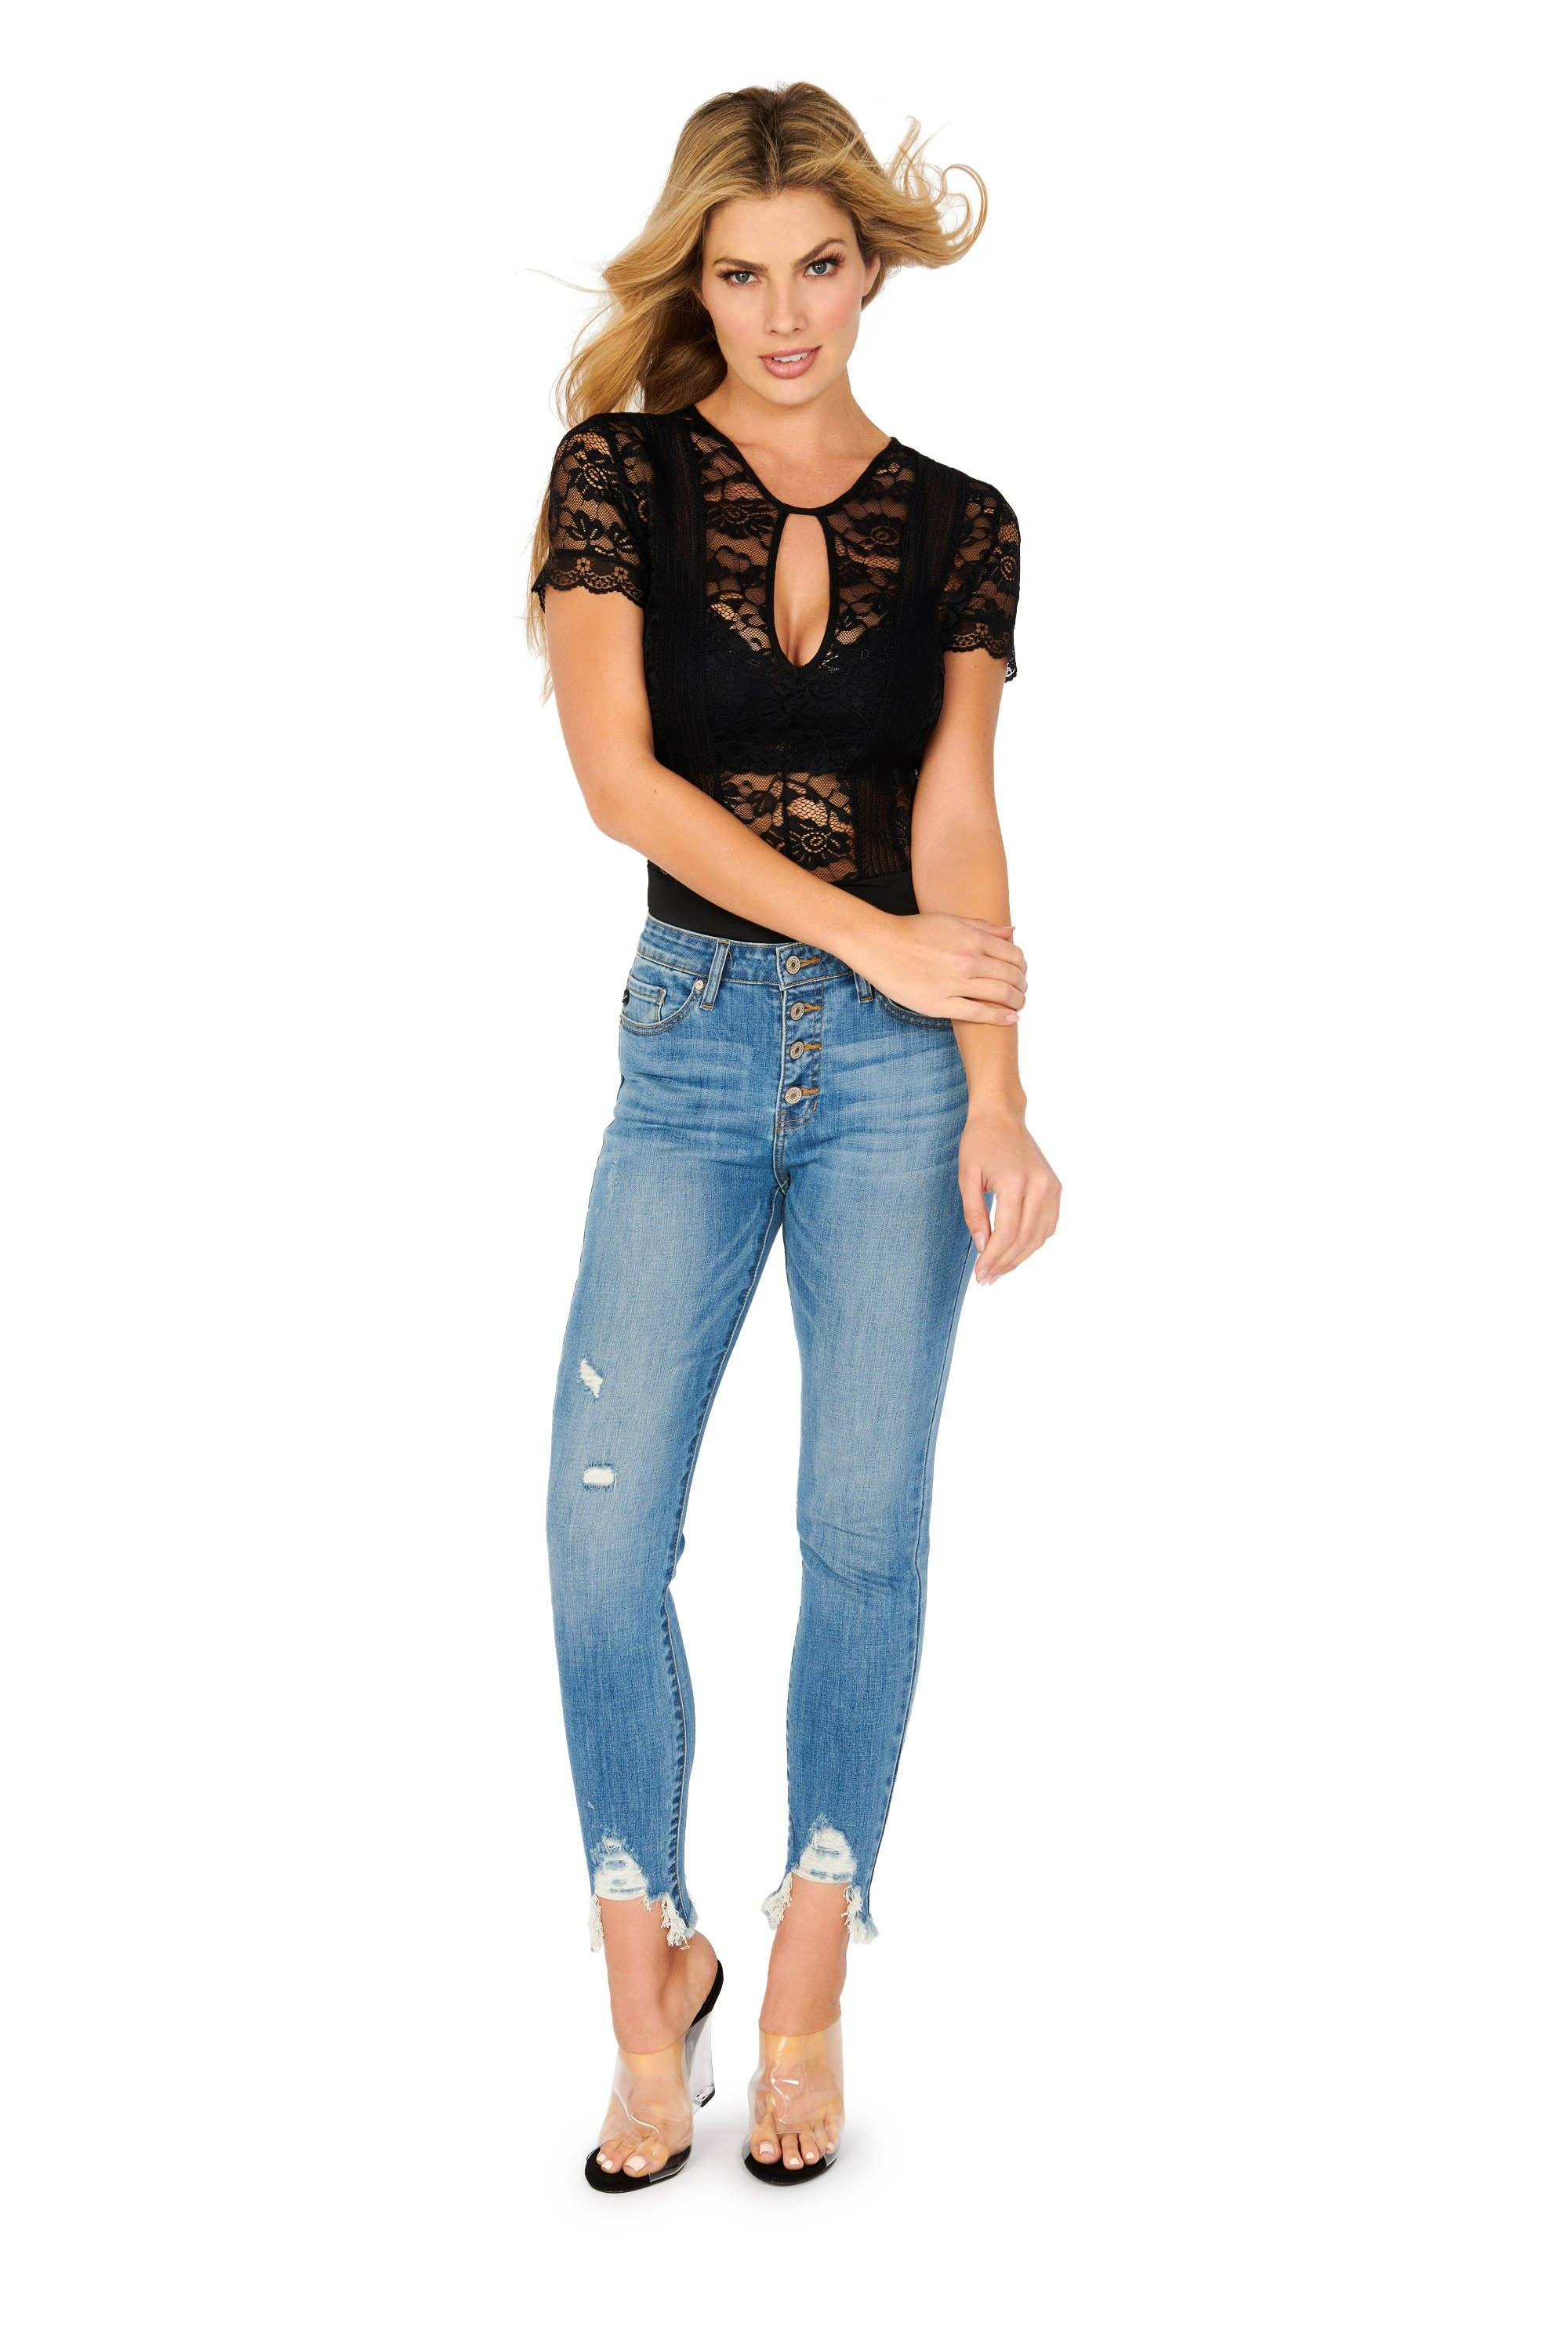 Kancan High Rise Medium Wash Distressed Ankles Skinny Jeans Denim HYPEACH BOUTIQUE